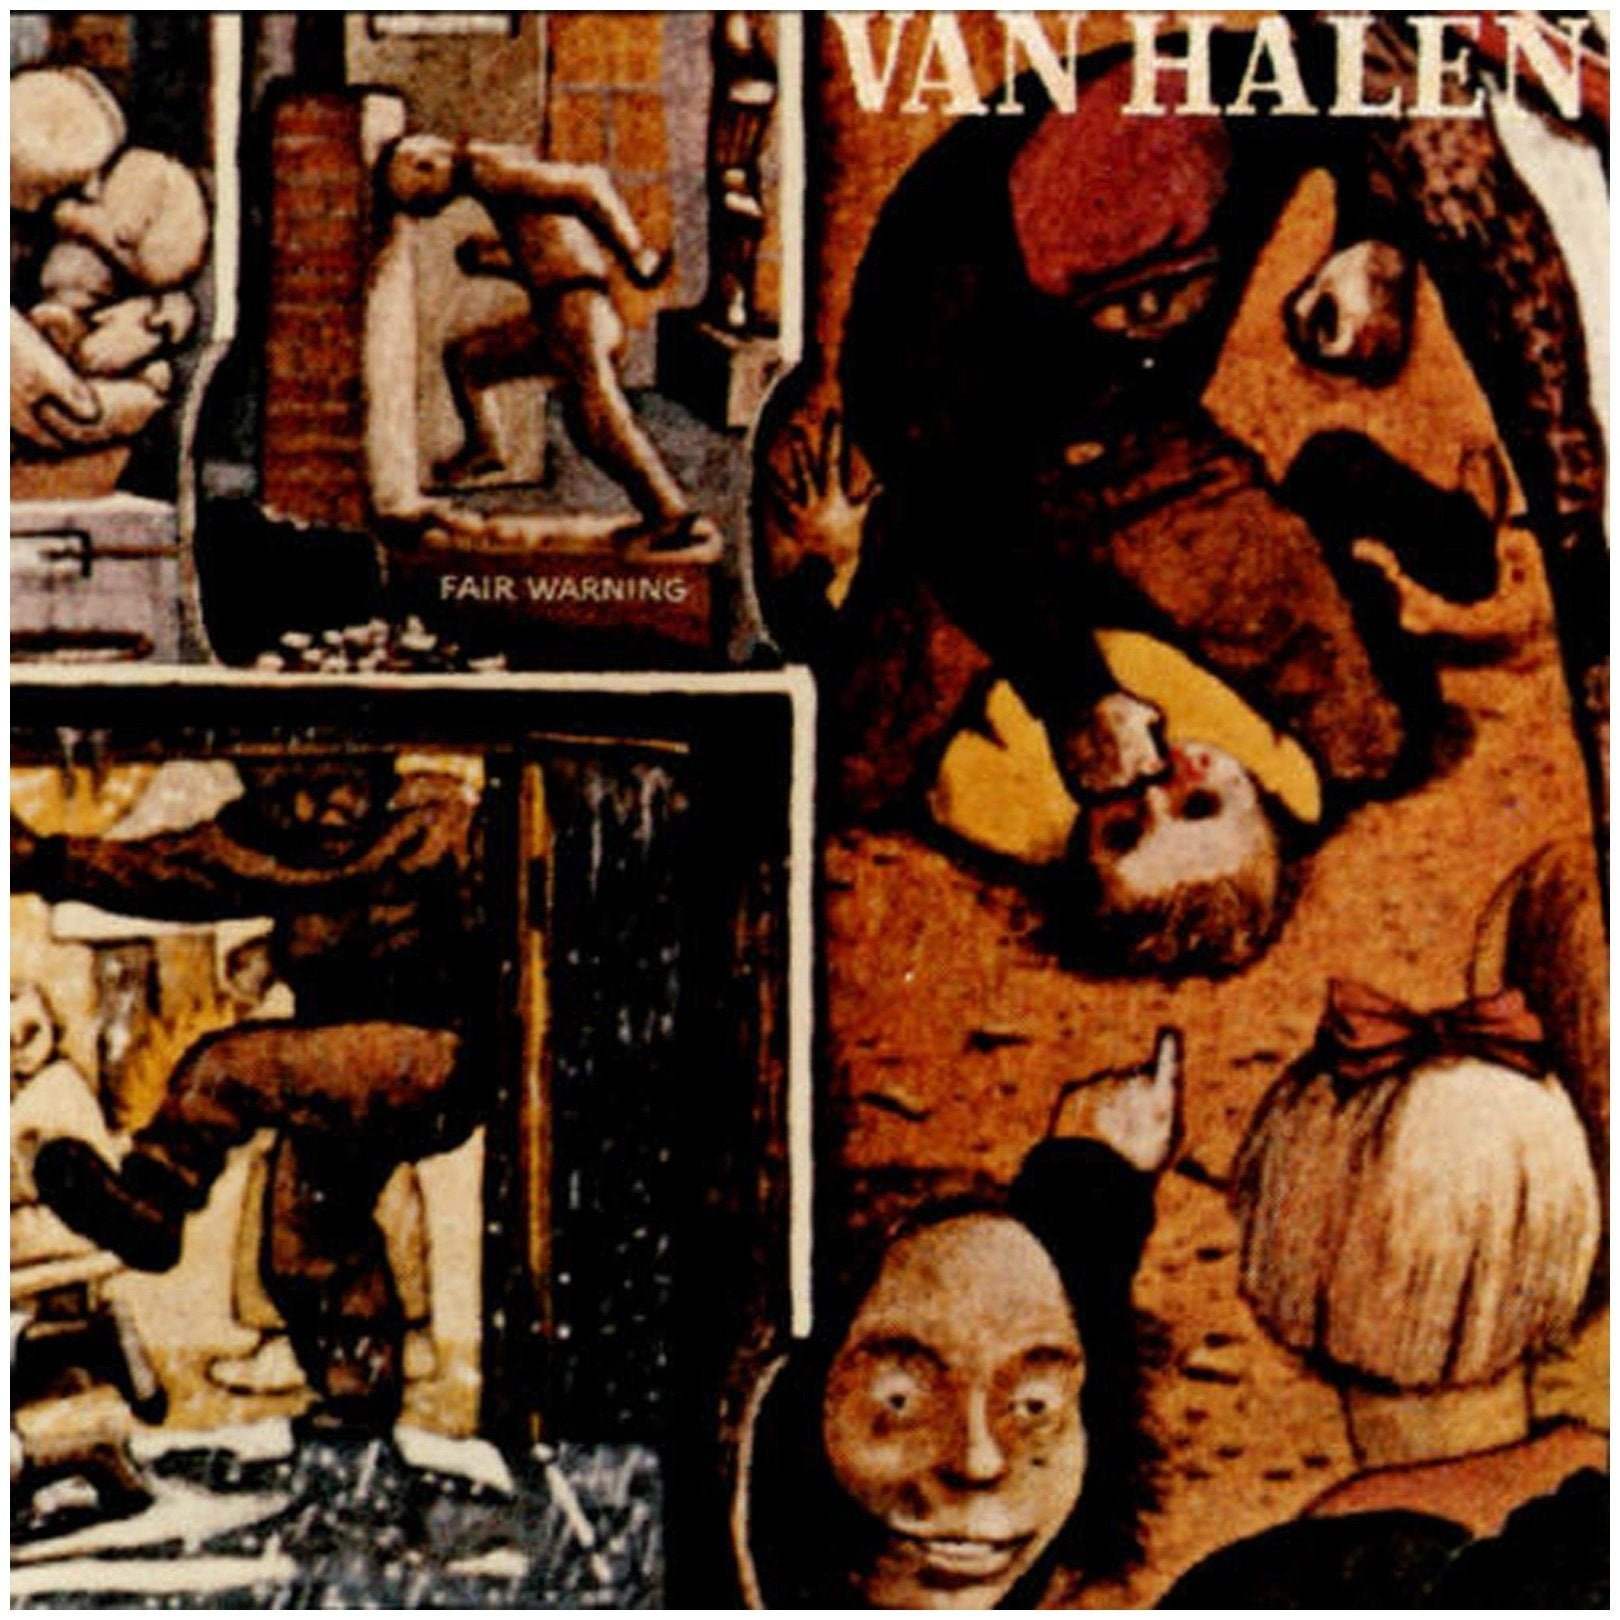 Van Halen - Van Halen - Fair Warning - Mini Lp - Cd